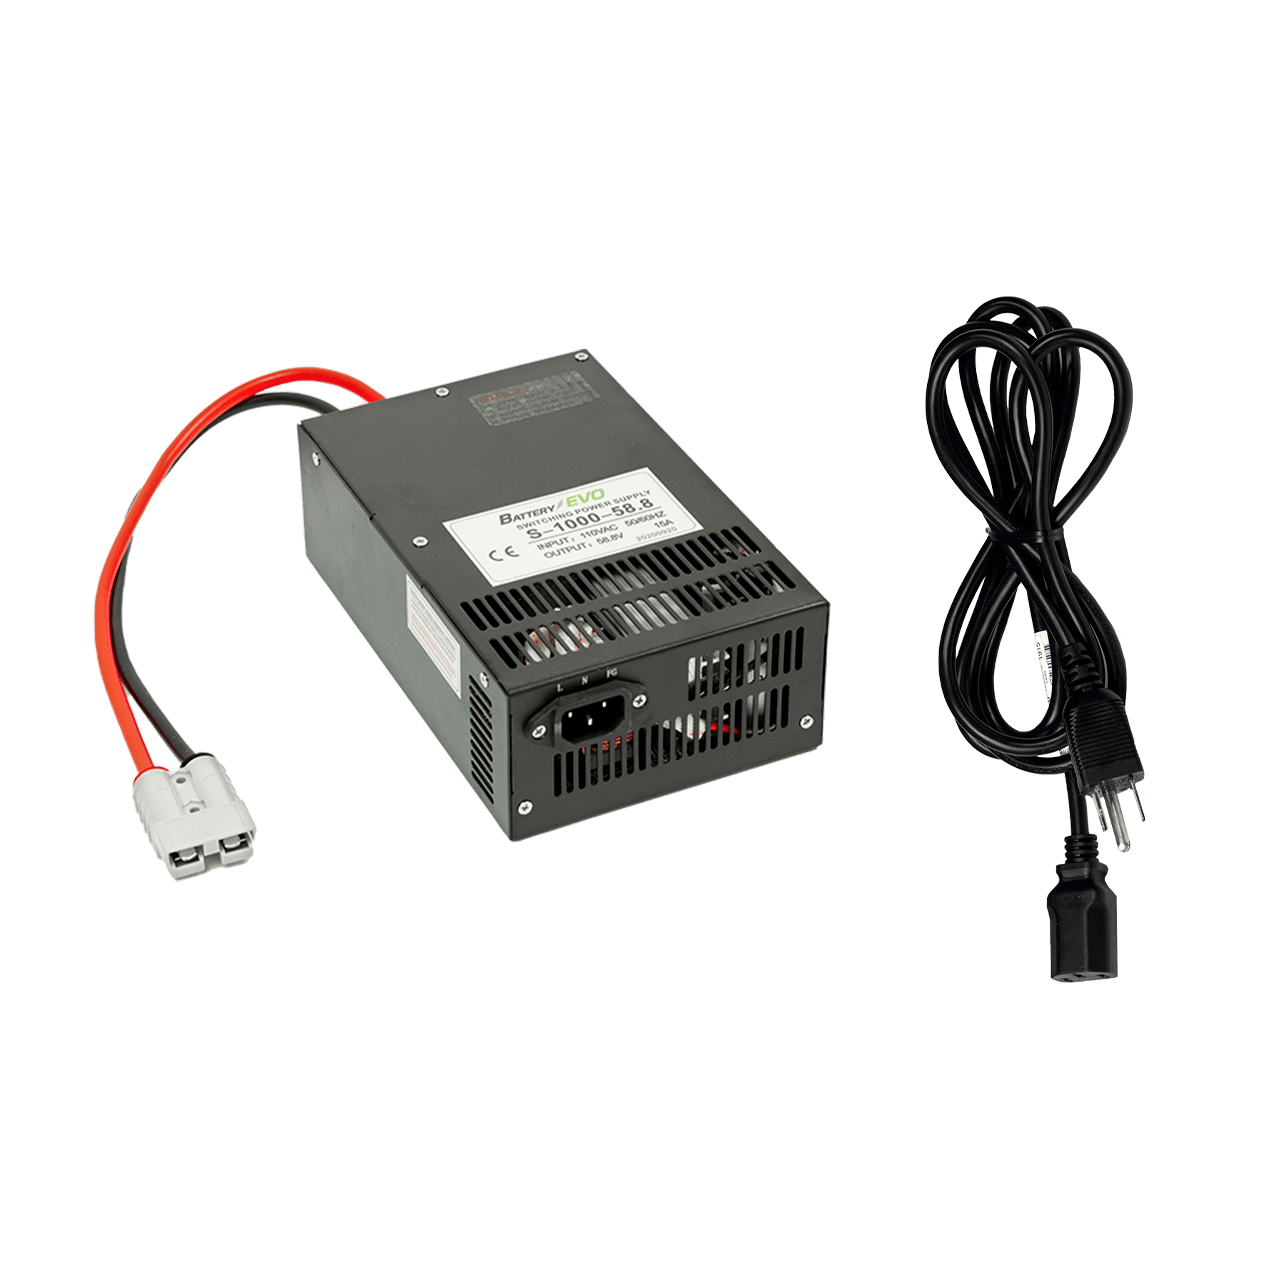 12V 30Ah 450W Adjustable DC Charger Power Supply - Lithium Ion Battery Golf Cart SB50 Anderson